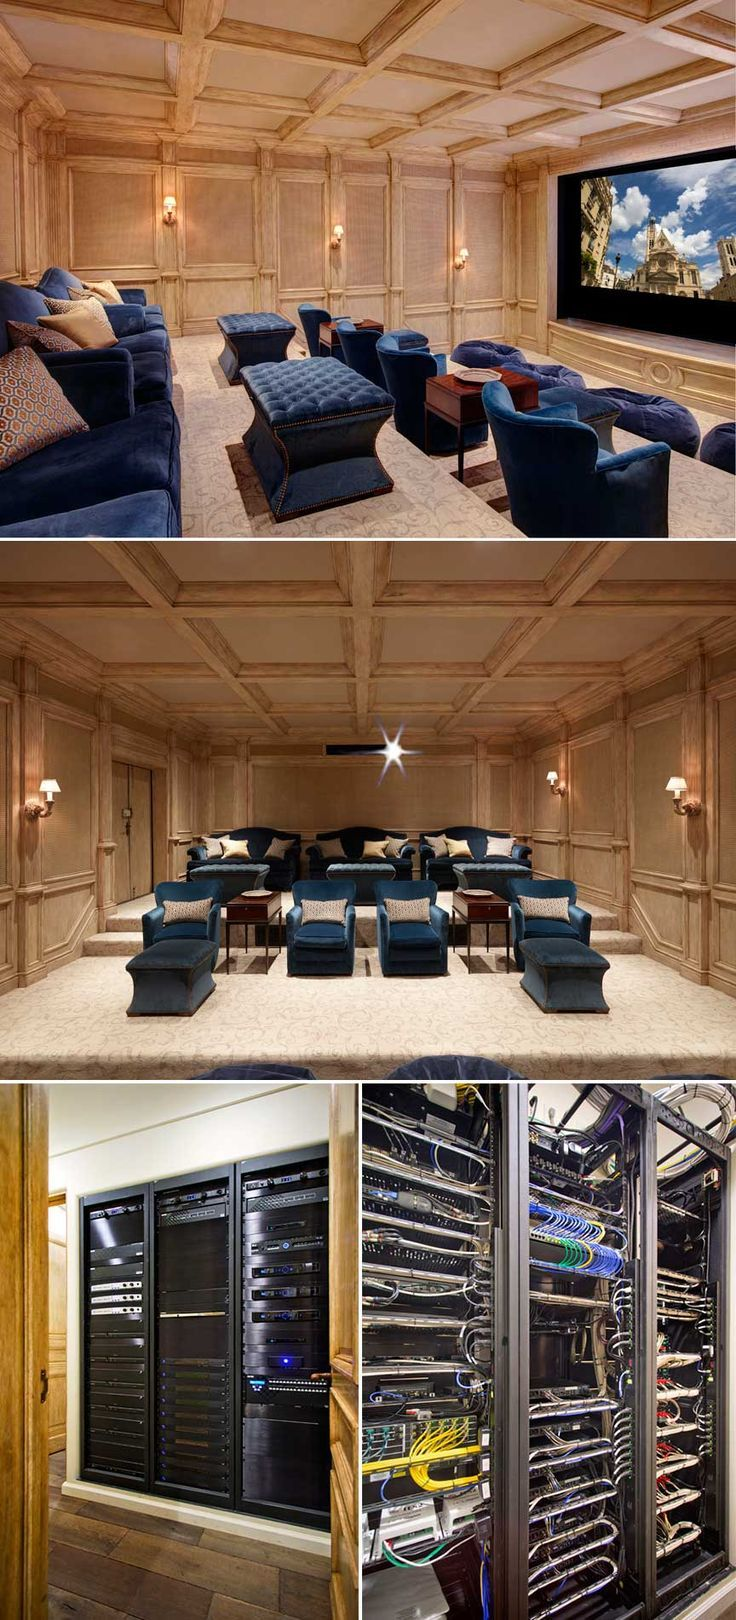 Great More Ideas Below: DIY Home Theater Decorations Ideas Basement Home Theater  Rooms Red Home Theater Seating Small Home Theater Speakers Luxury Home  Theater ...